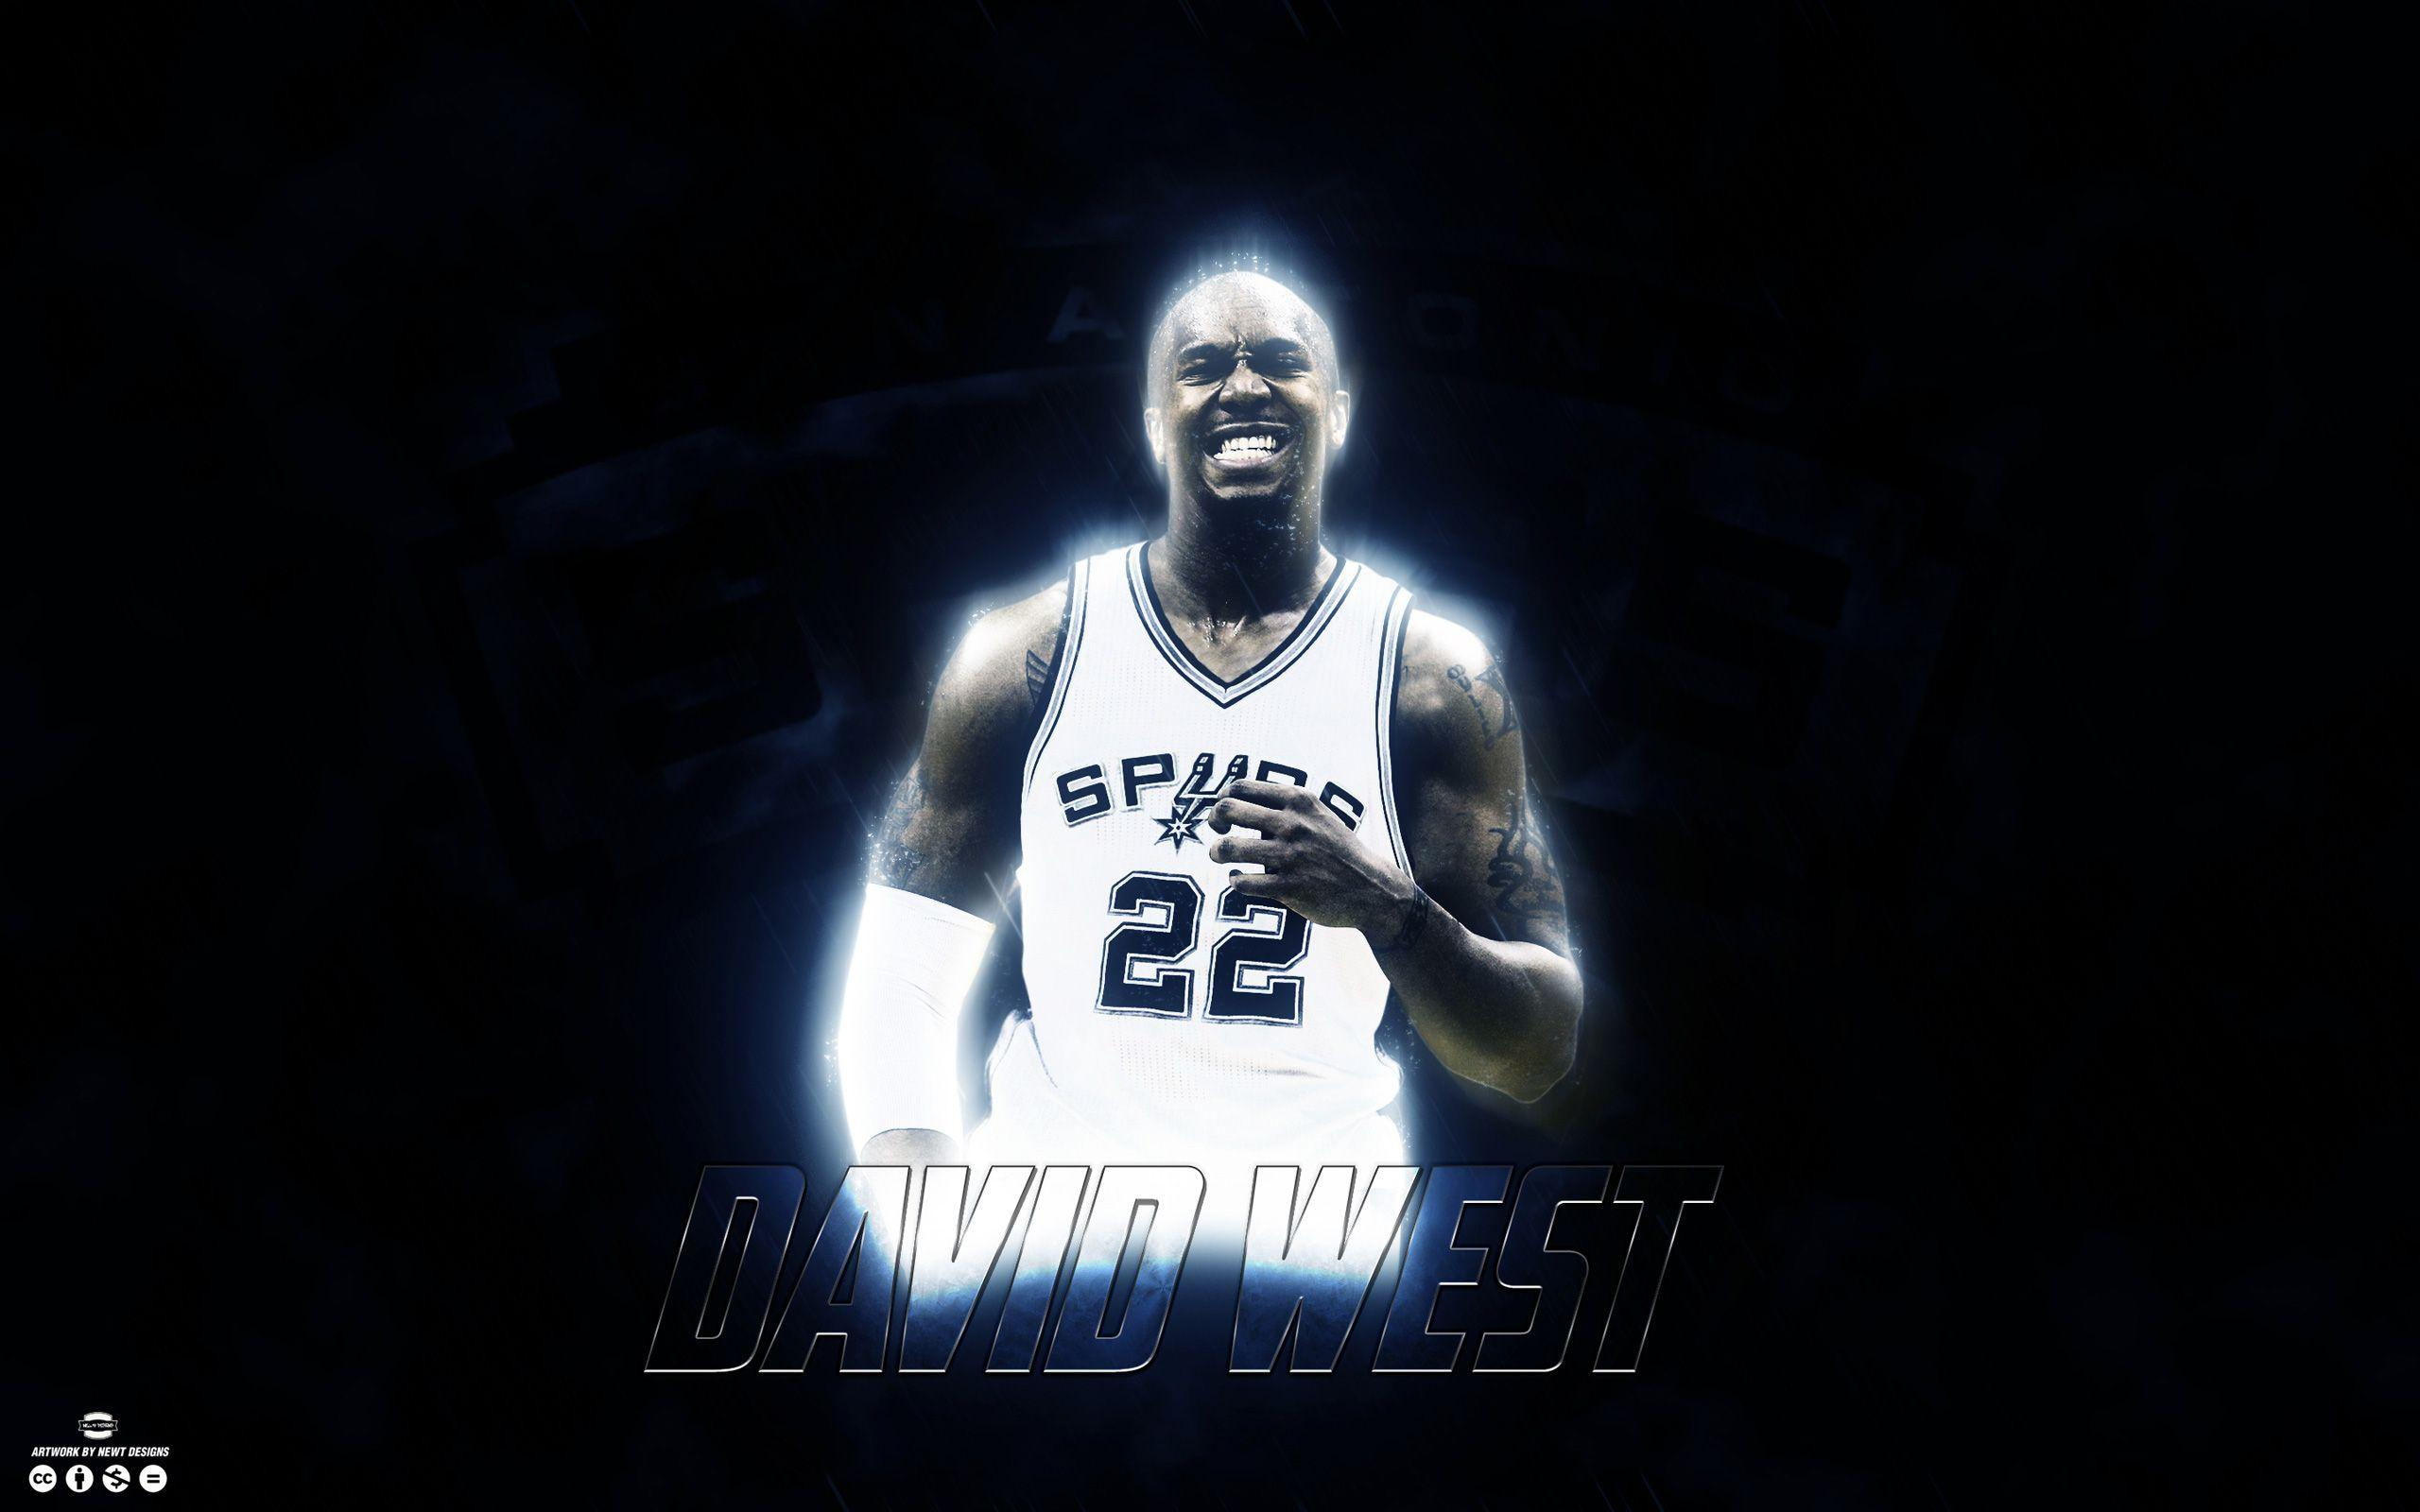 David West San Antonio Spurs 2015 Wallpaper | Basketball ...